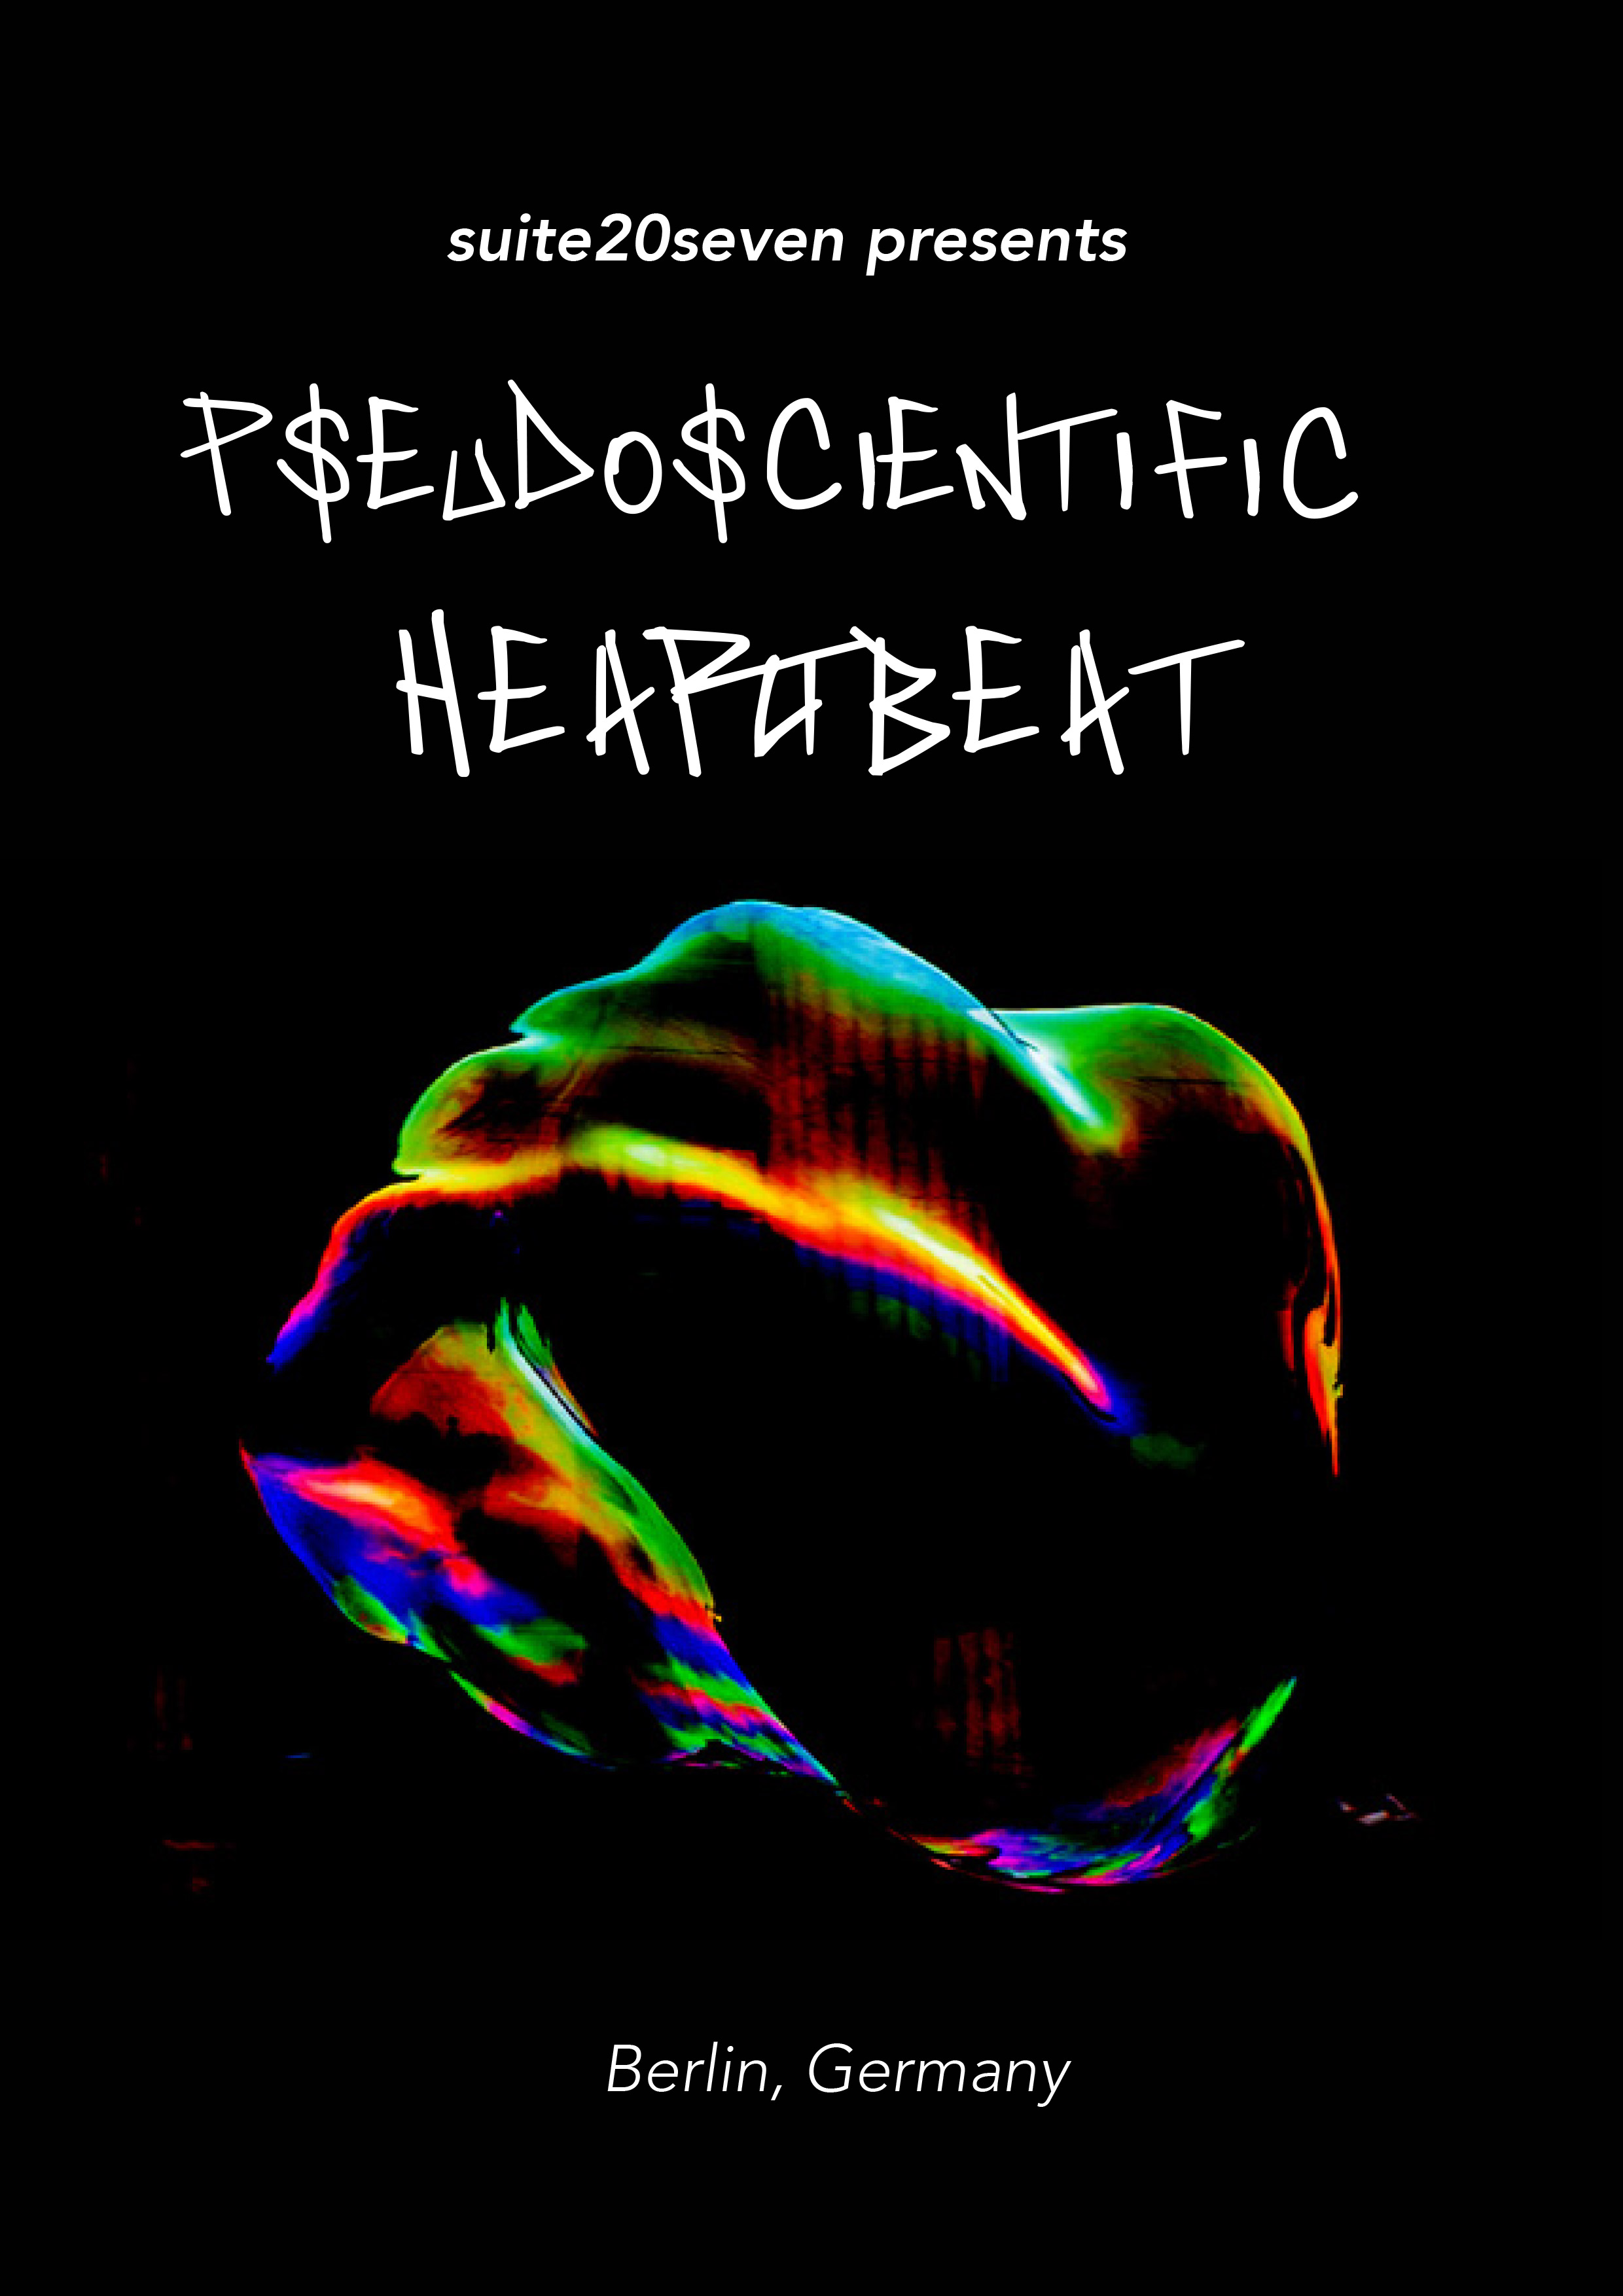 pseudoscientific-heartbeat-1.jpg